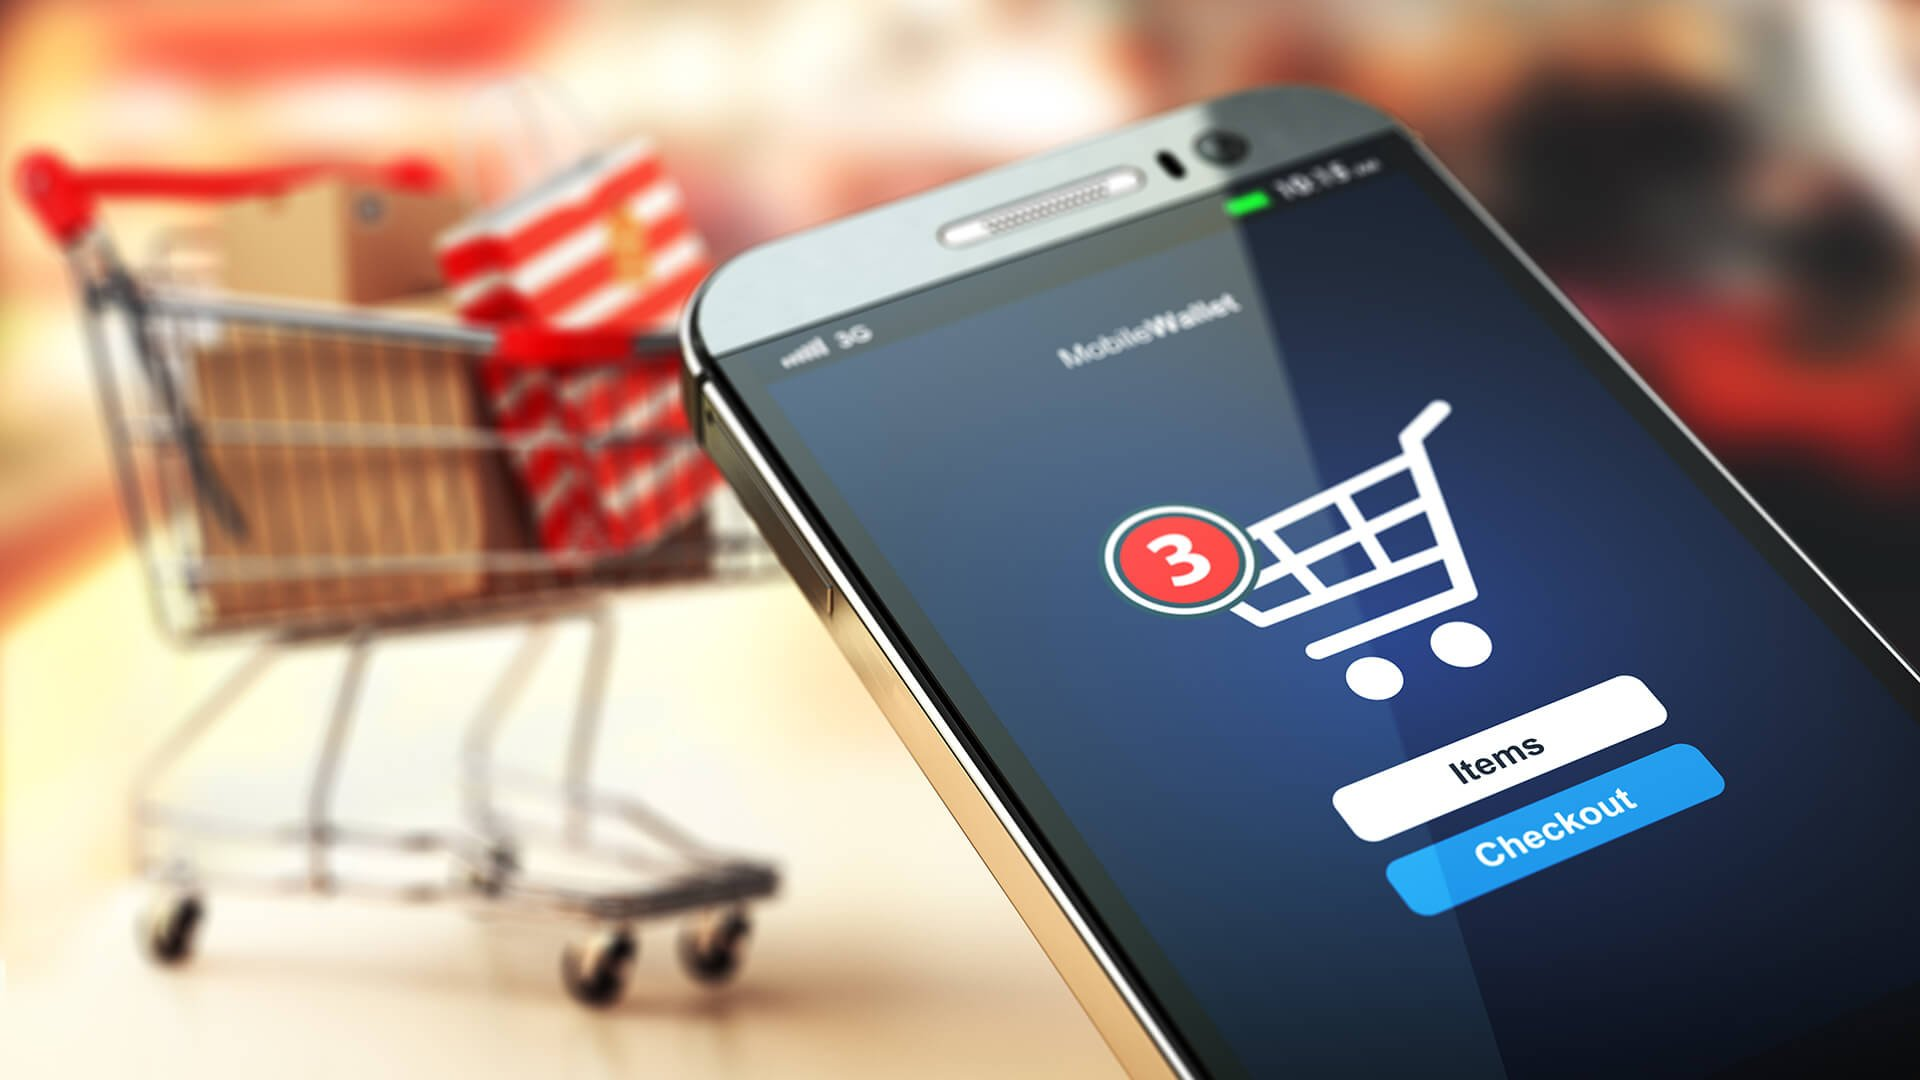 Mobile shopping accounts for over 50% of online purchases